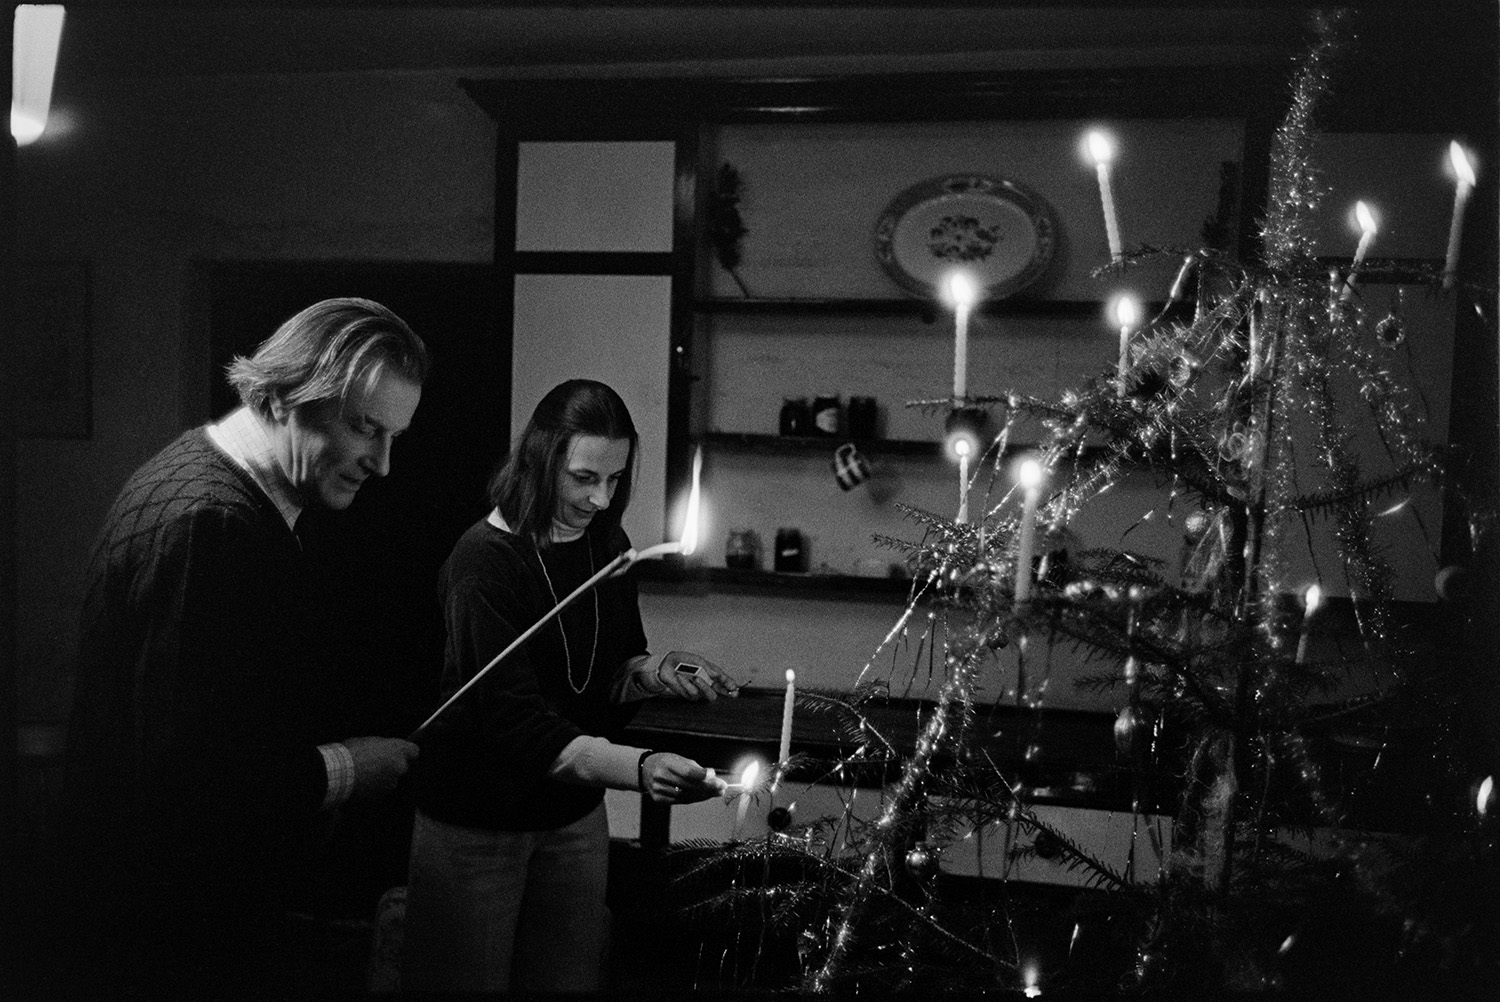 Couple lighting candles on Christmas Tree.<br /> [Pat Furse and Antonia Furse lighting candles on a Christmas tree in a darkened room, in Halsdon, Dolton. Pat Furse is holding a long taper.]